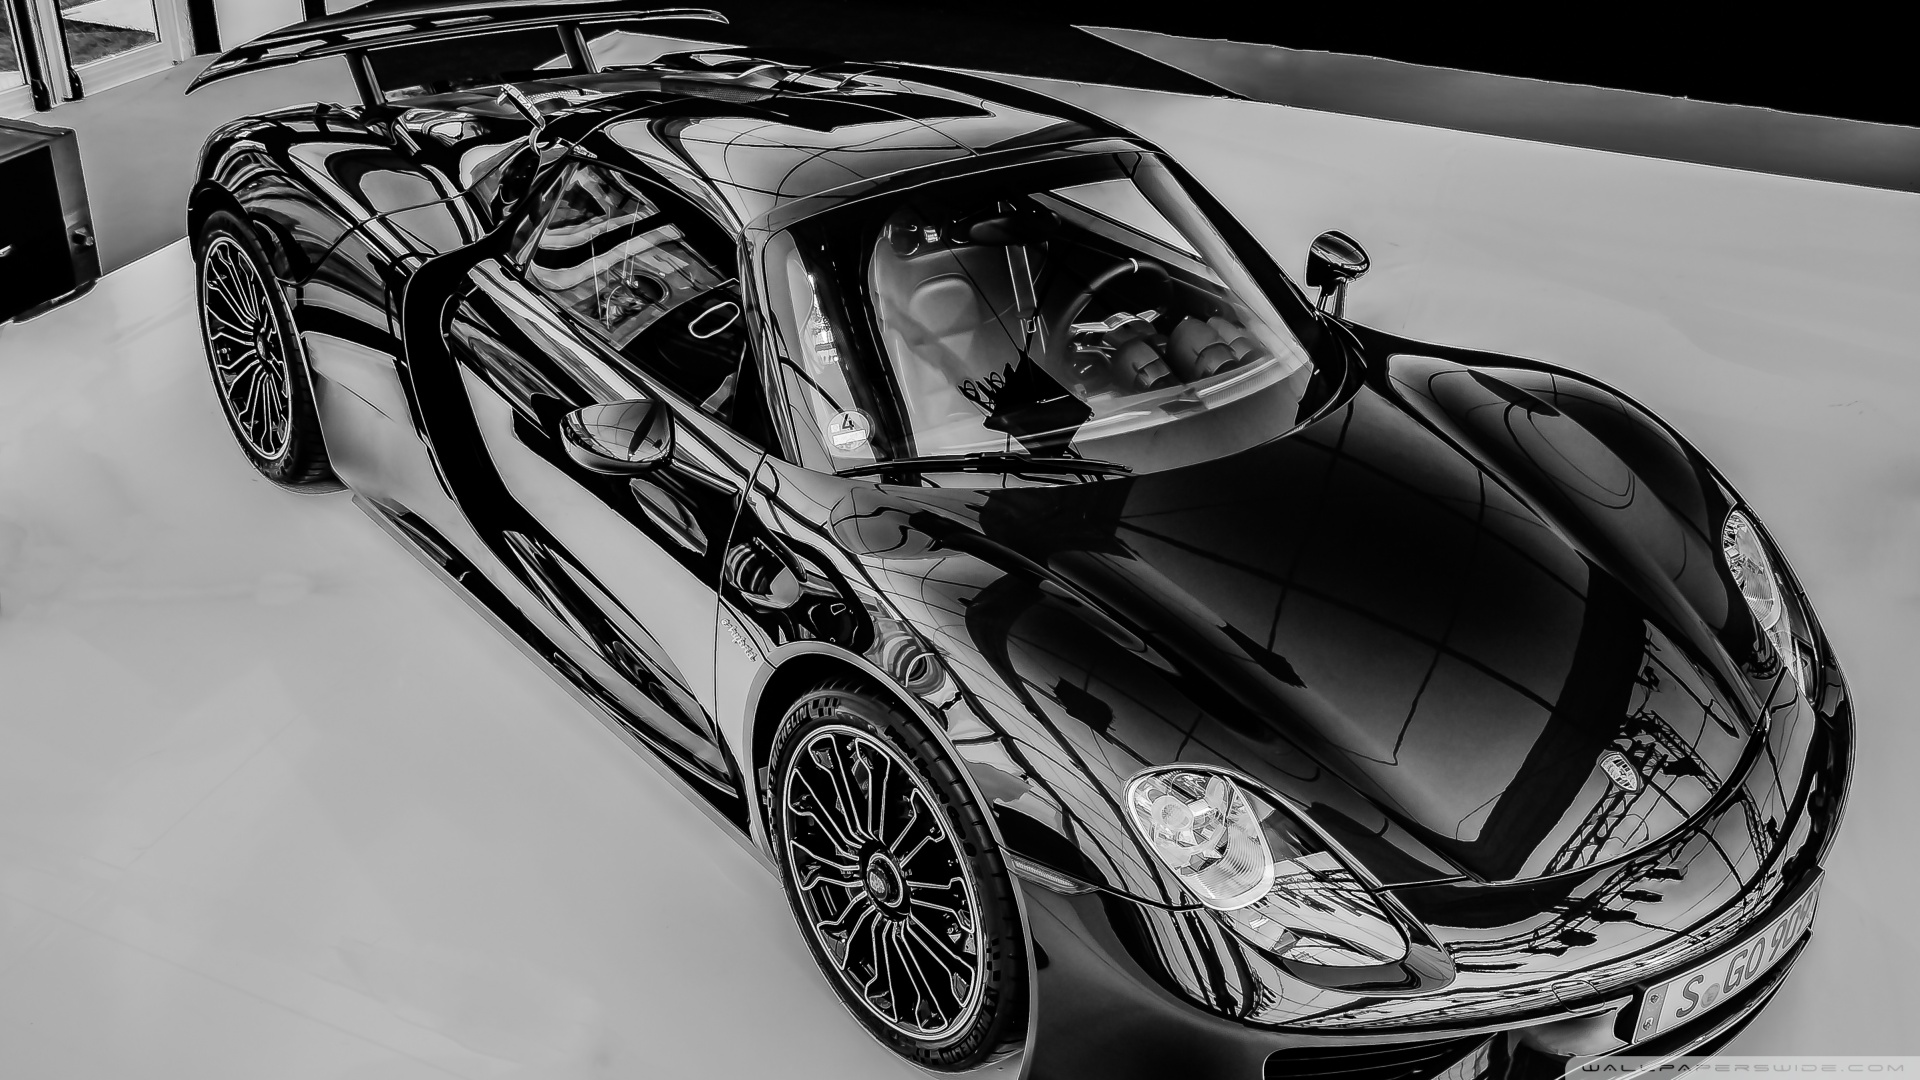 most_beautiful_cars_in_the_world__black_and_white-wallpaper-1920x1080